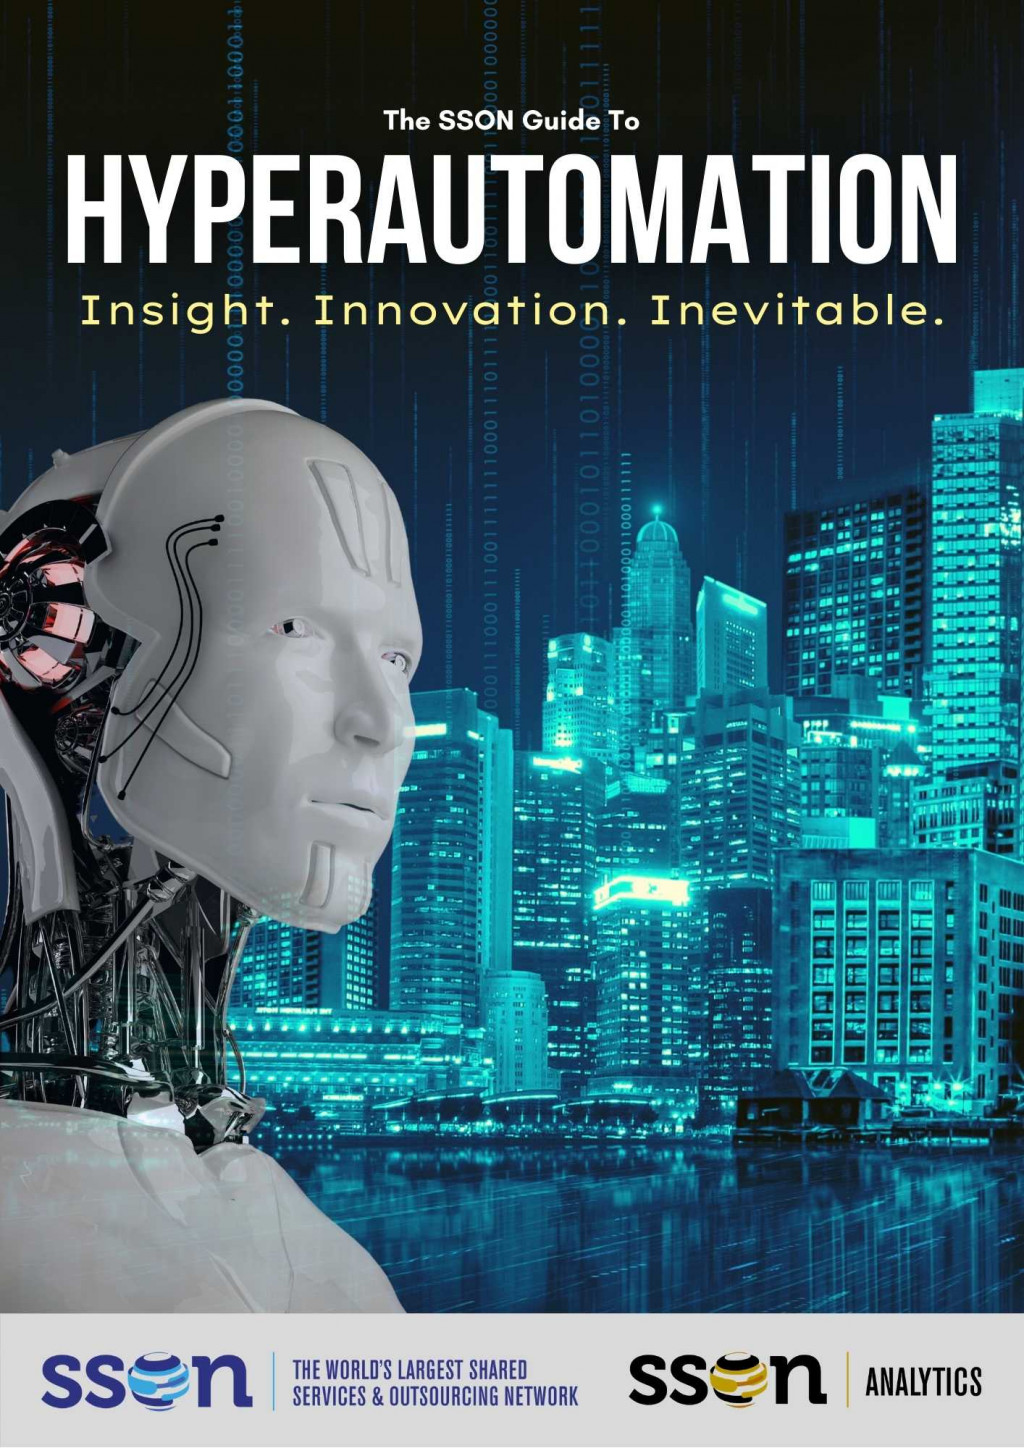 sson_s_guide_to_hyperautomation__2_